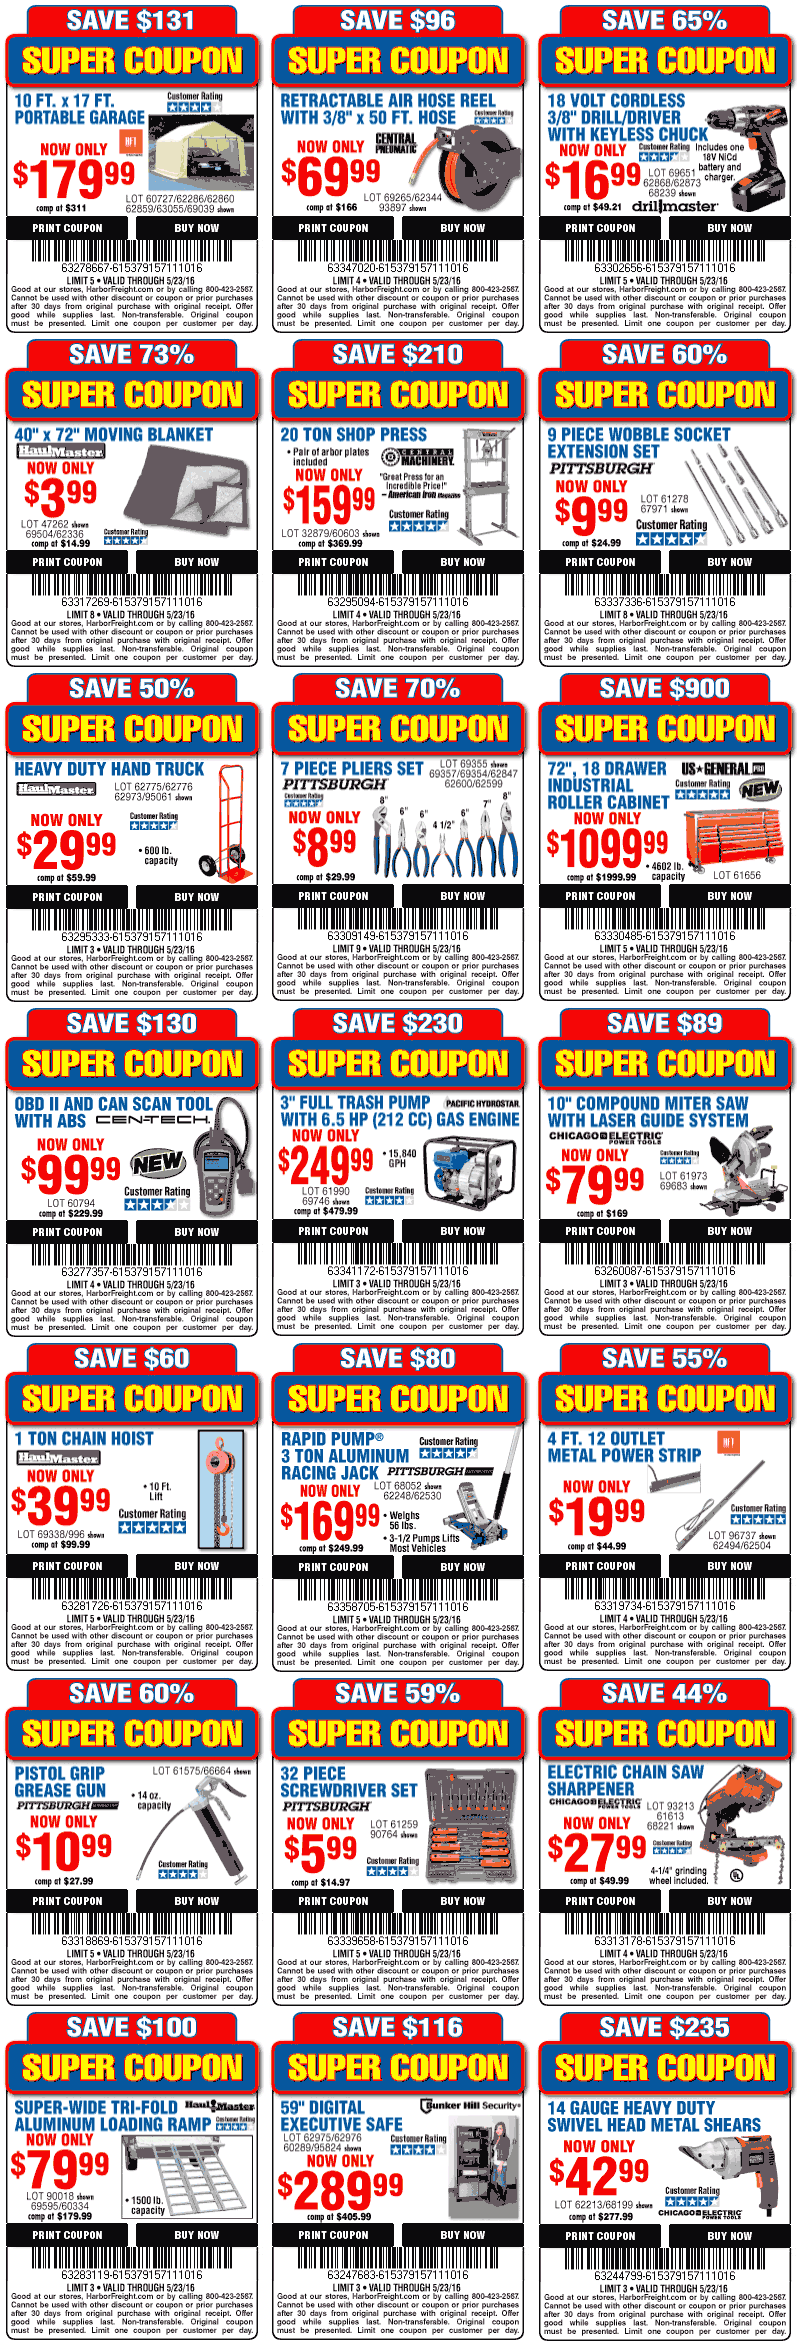 Harbor Freight Tools Coupon June 2017 Various coupons for Harbor Freight Tools